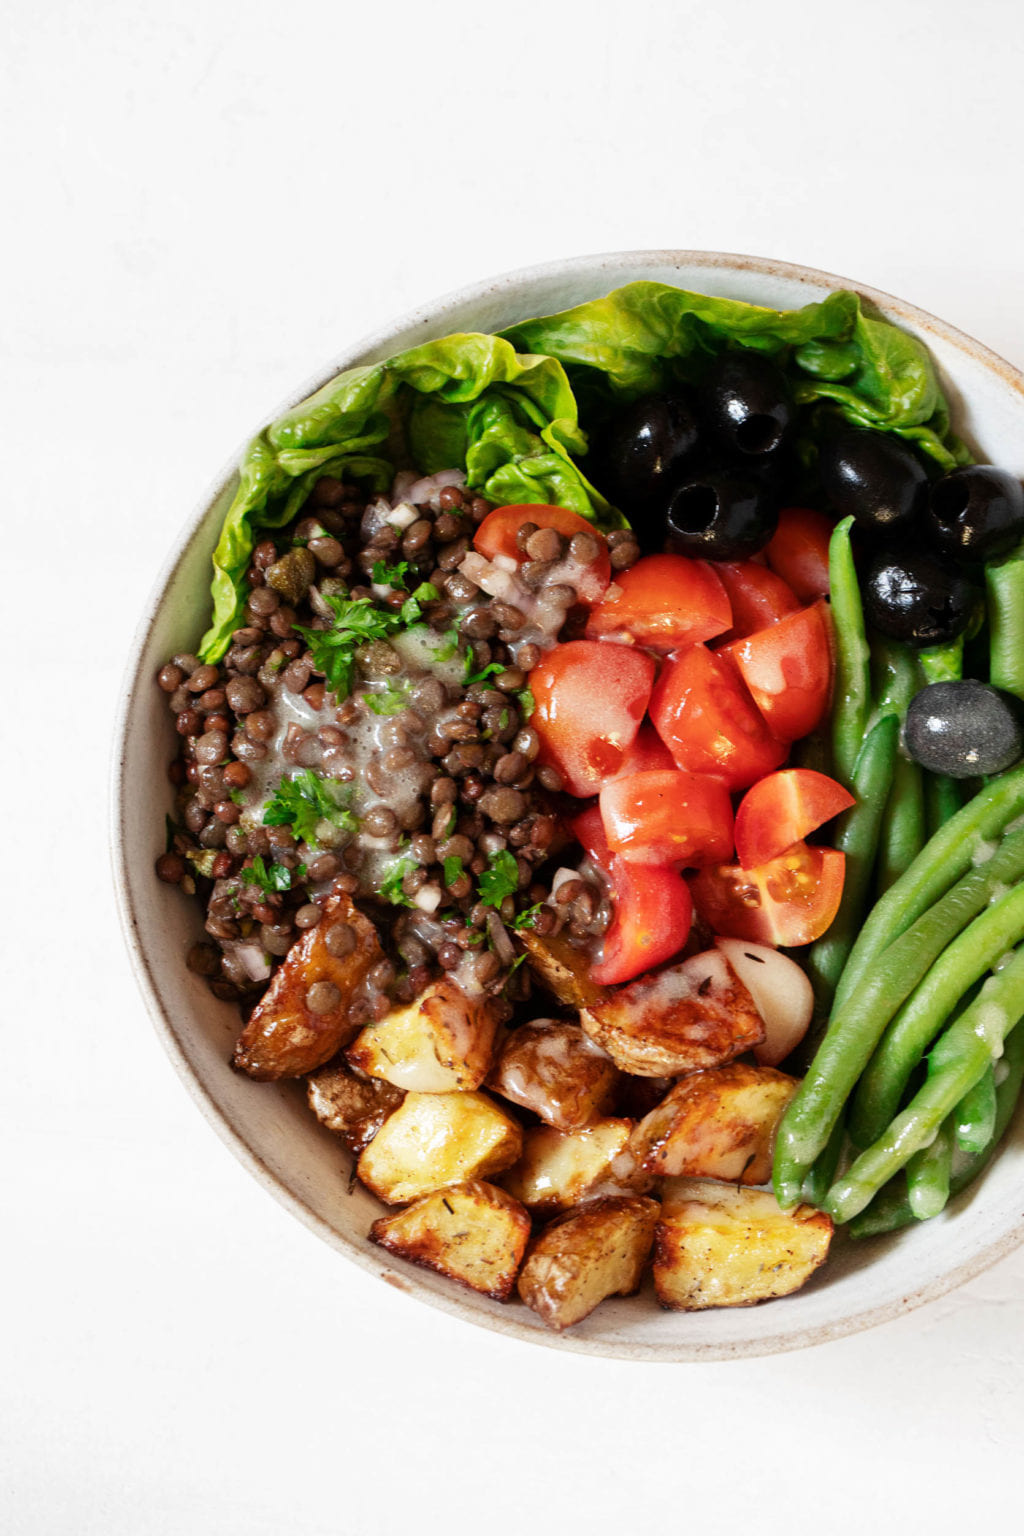 A round white salad bowl contains colorful ingredients for making Niçoise vegetarian salads, including tomatoes, lentils, potatoes and green beans.